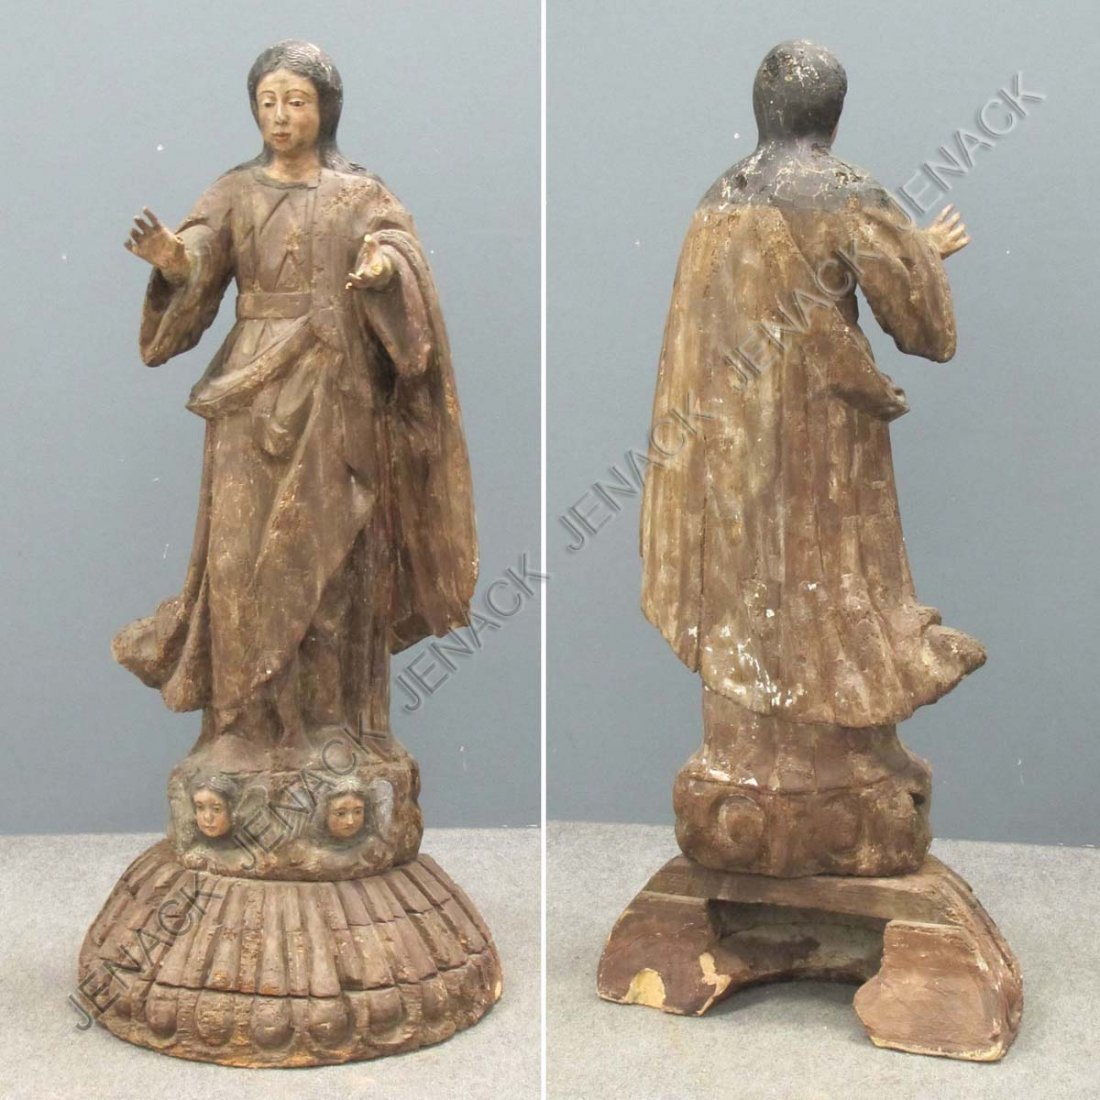 15: SPANISH COLONIAL CARVED AND PAINTED SANTOS FIGURE